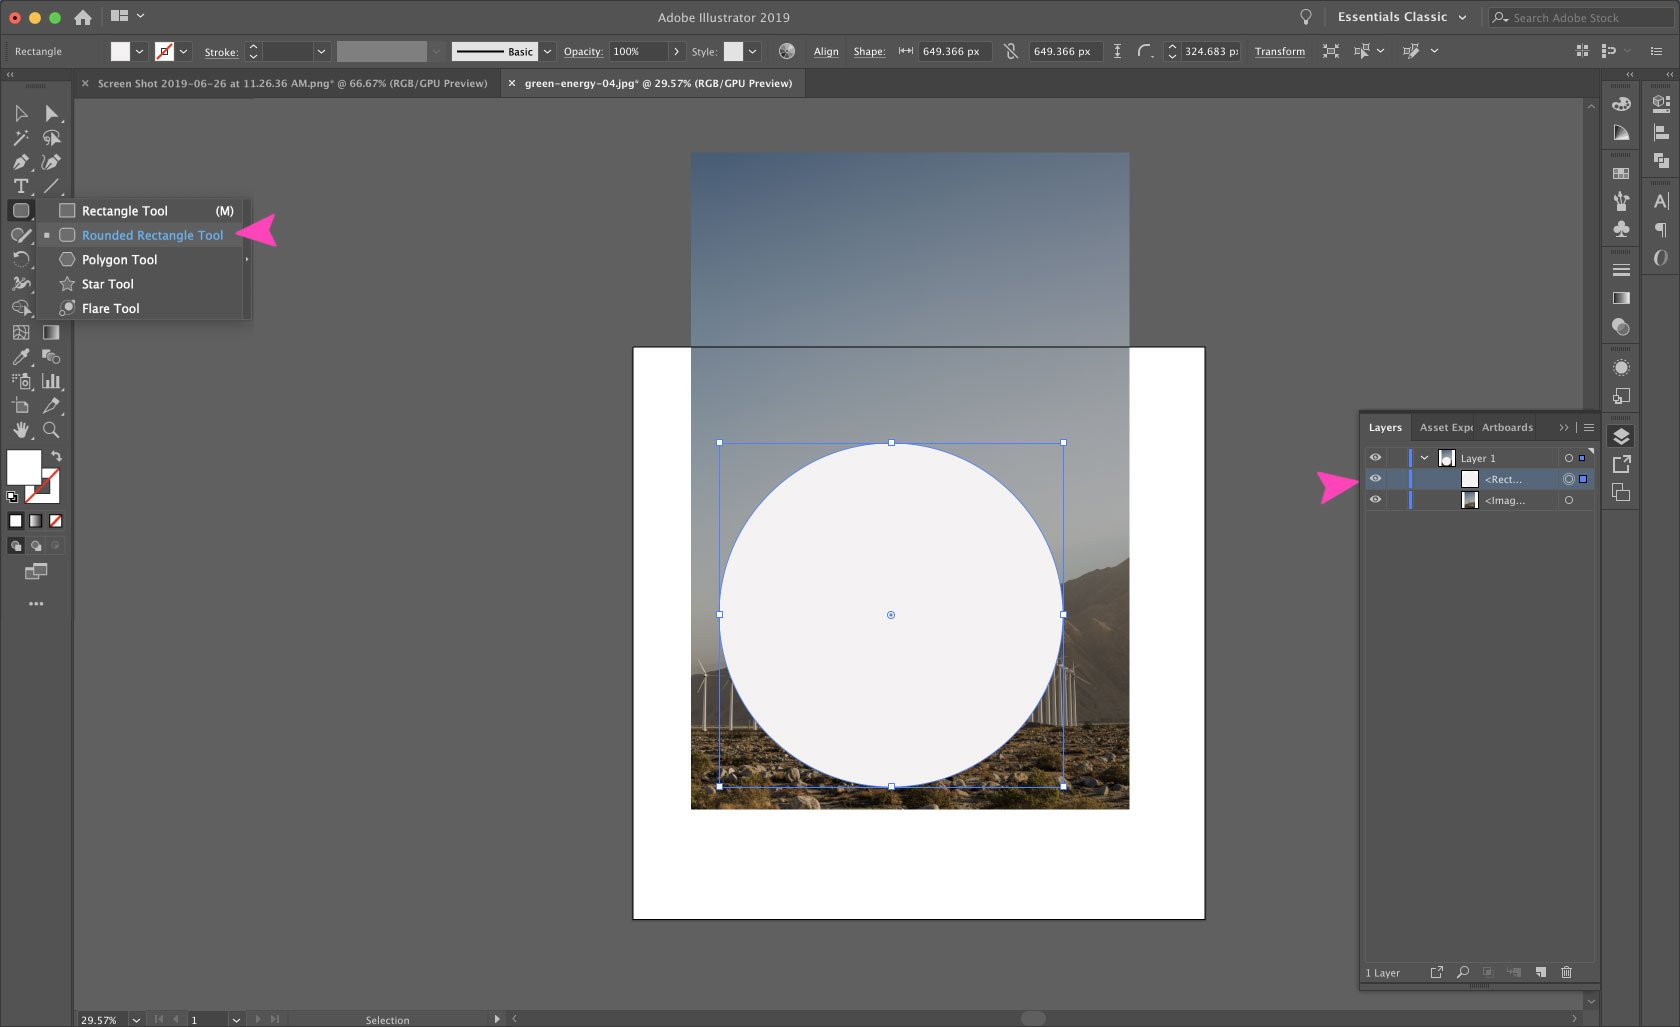 Add a circular clipping mask on a layer above the image